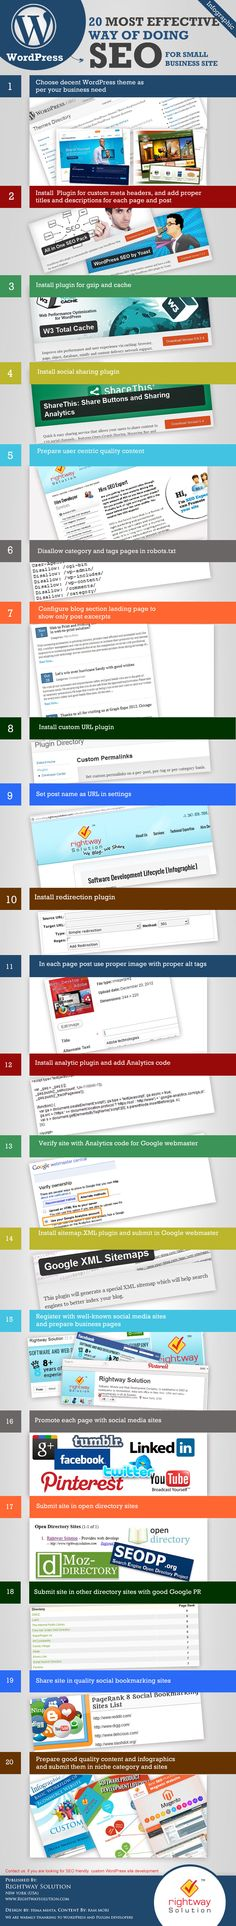 #ElSaborDigital vía @JairoAmaya How to make WordPress Site #SEO Friendly in 2013 Infographic